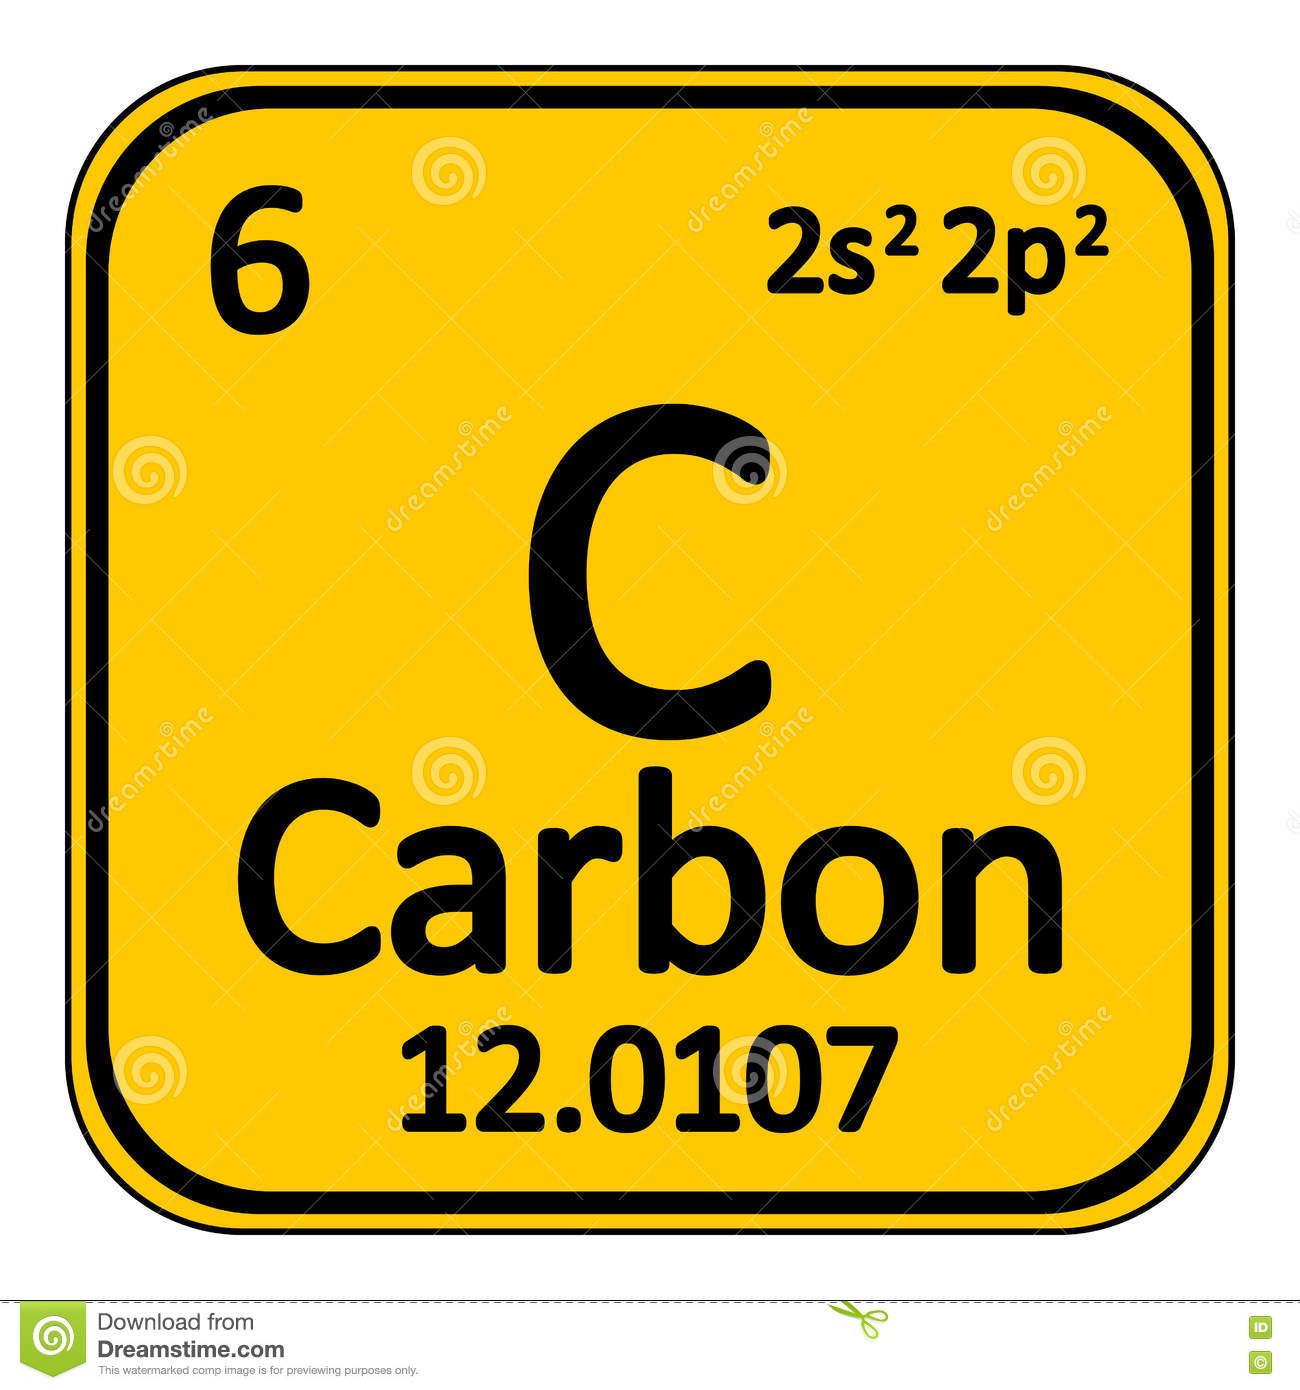 Periodic table element carbon icon stock illustration image royalty free illustration download periodic table element carbon gamestrikefo Gallery